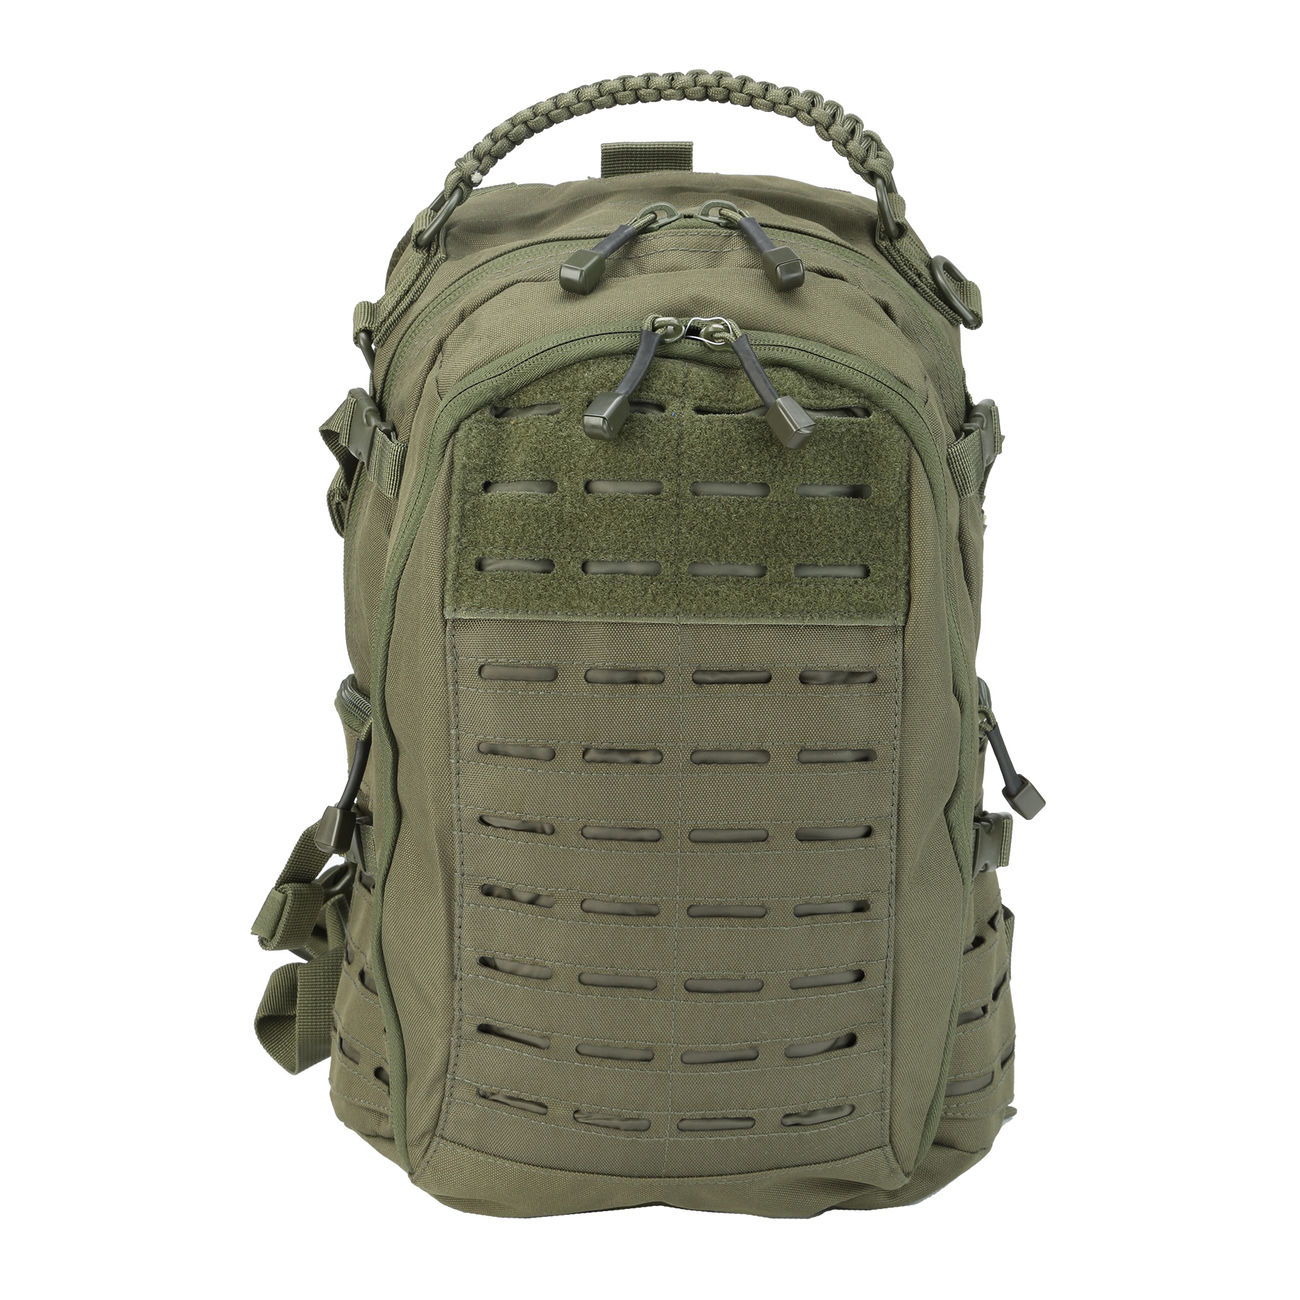 Mil-Tec Rucksack Mission Pack Laser Cut Small oliv 5